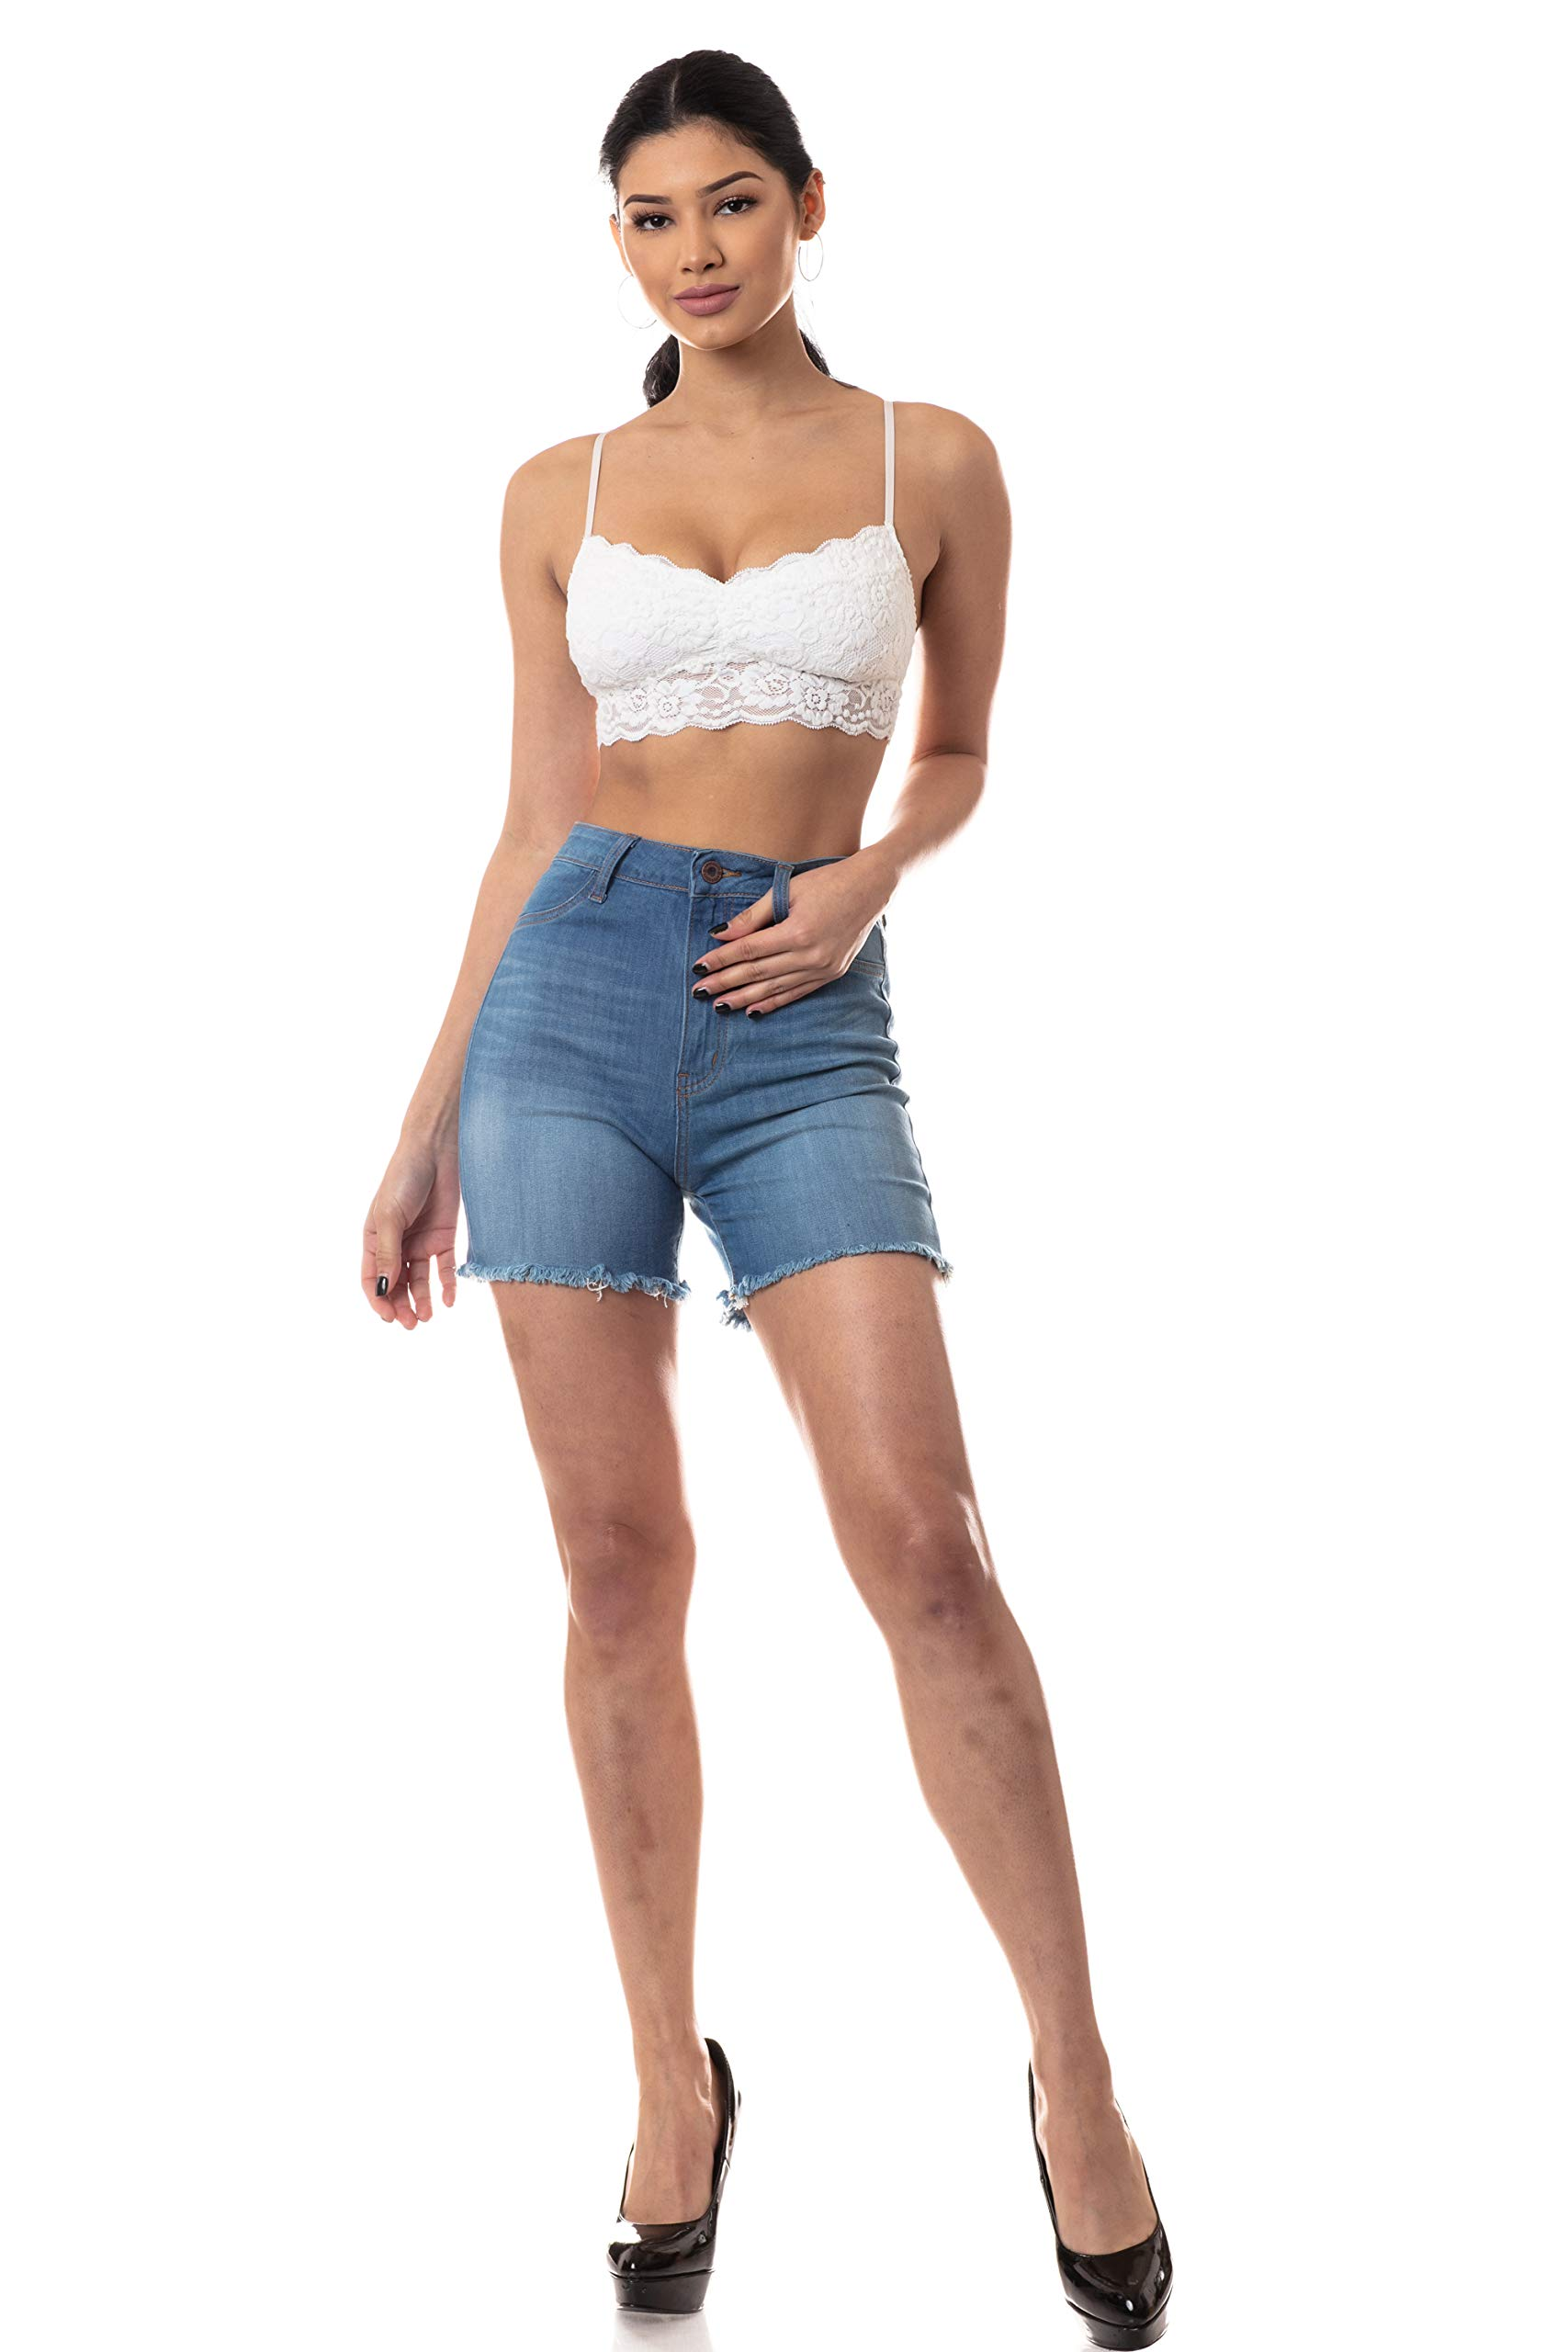 Aphrodite Denim Shorts for Women - High Waisted Hand Sanding Casual Spring Summer Fashion Frayed Short Jeans 6156F Medium Blue XL by AP Blue